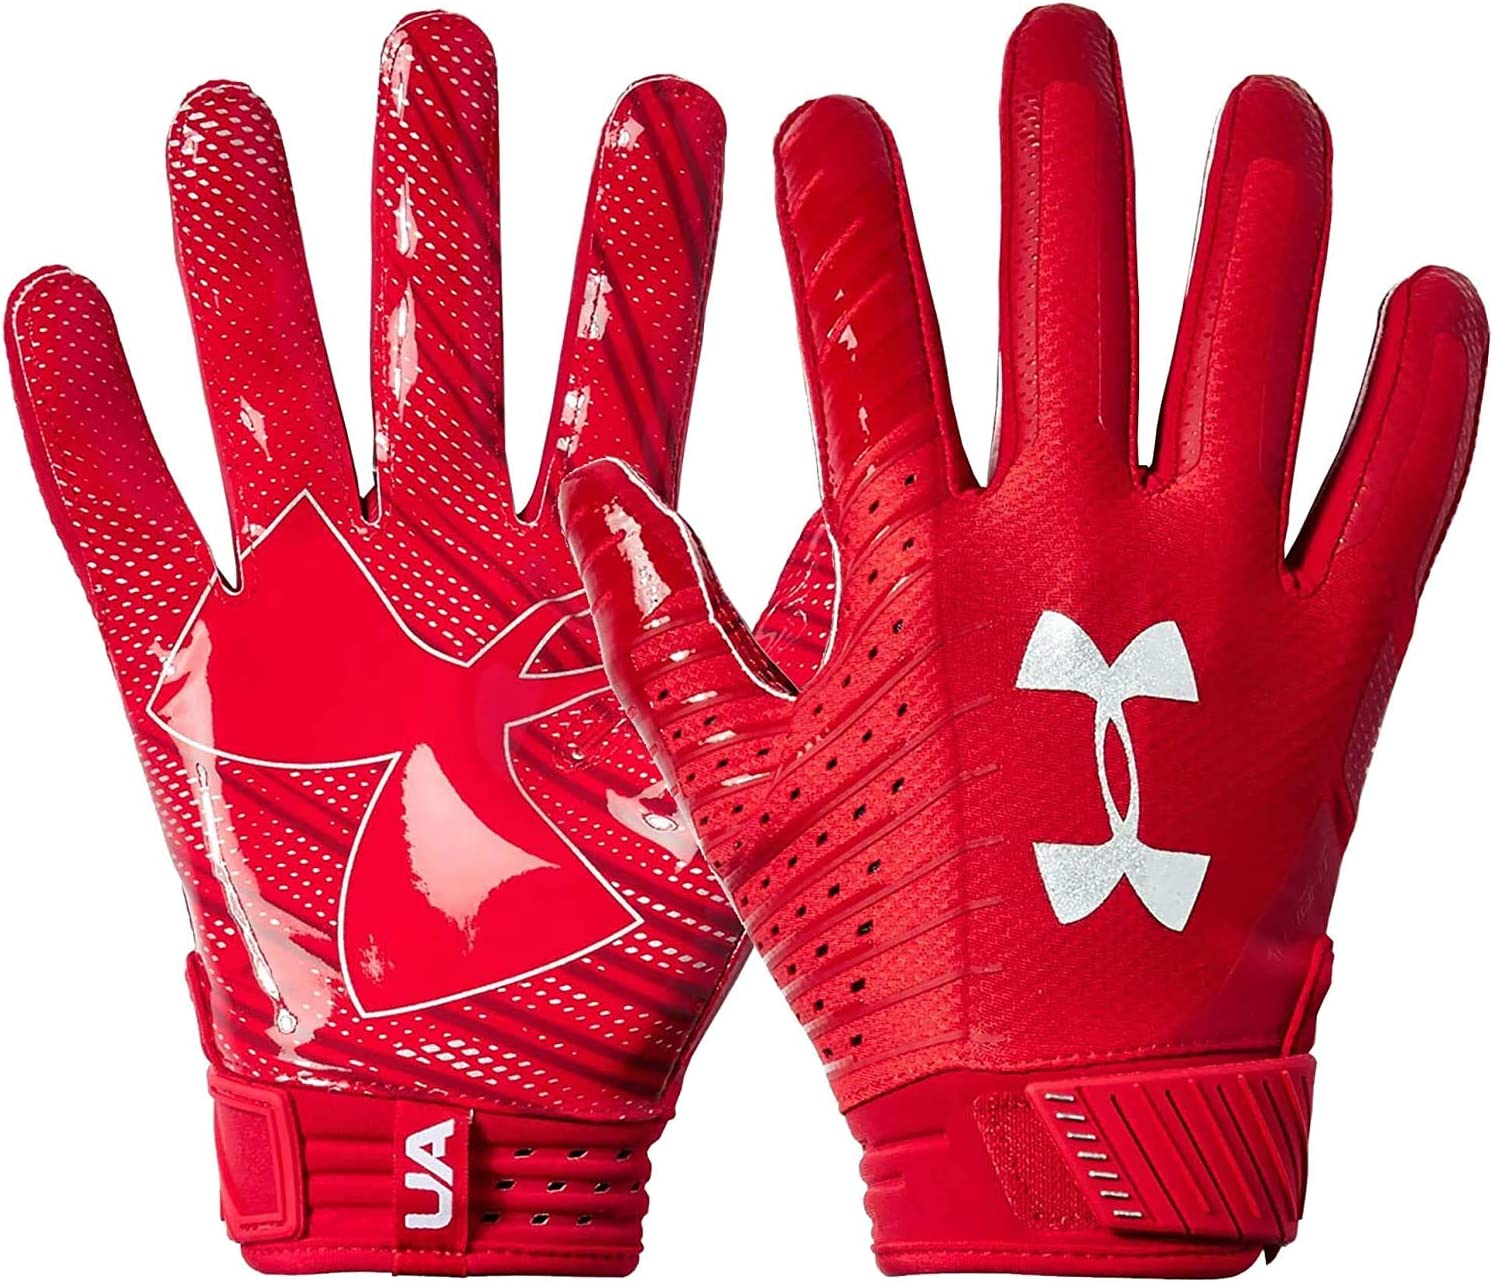 Under Armour Spotlight NFL RED Men's Football Receiver Gloves Size Large